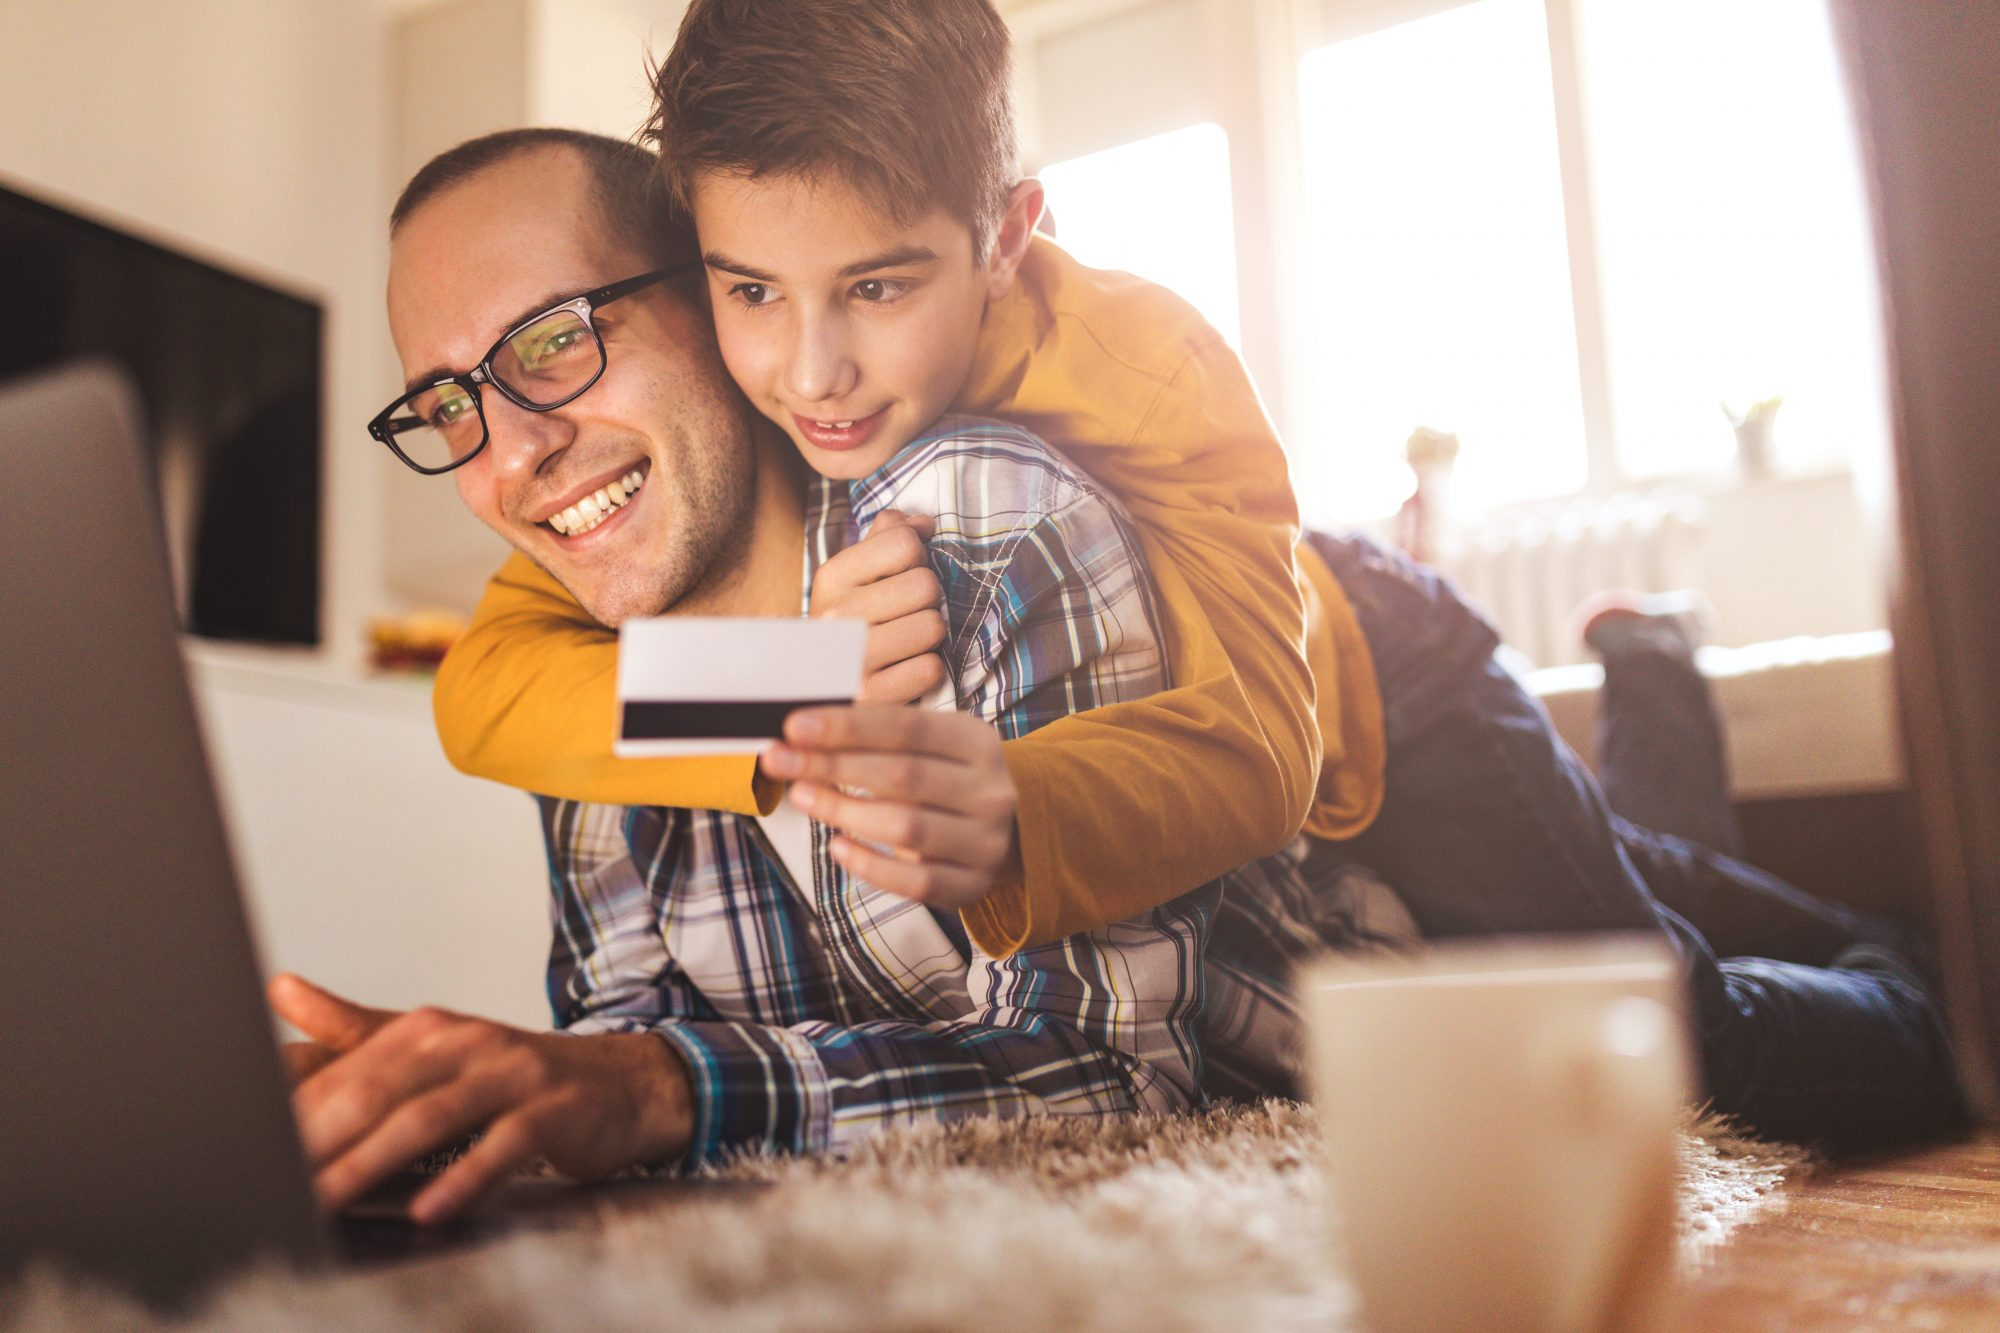 Son holding credit card while on father's back.